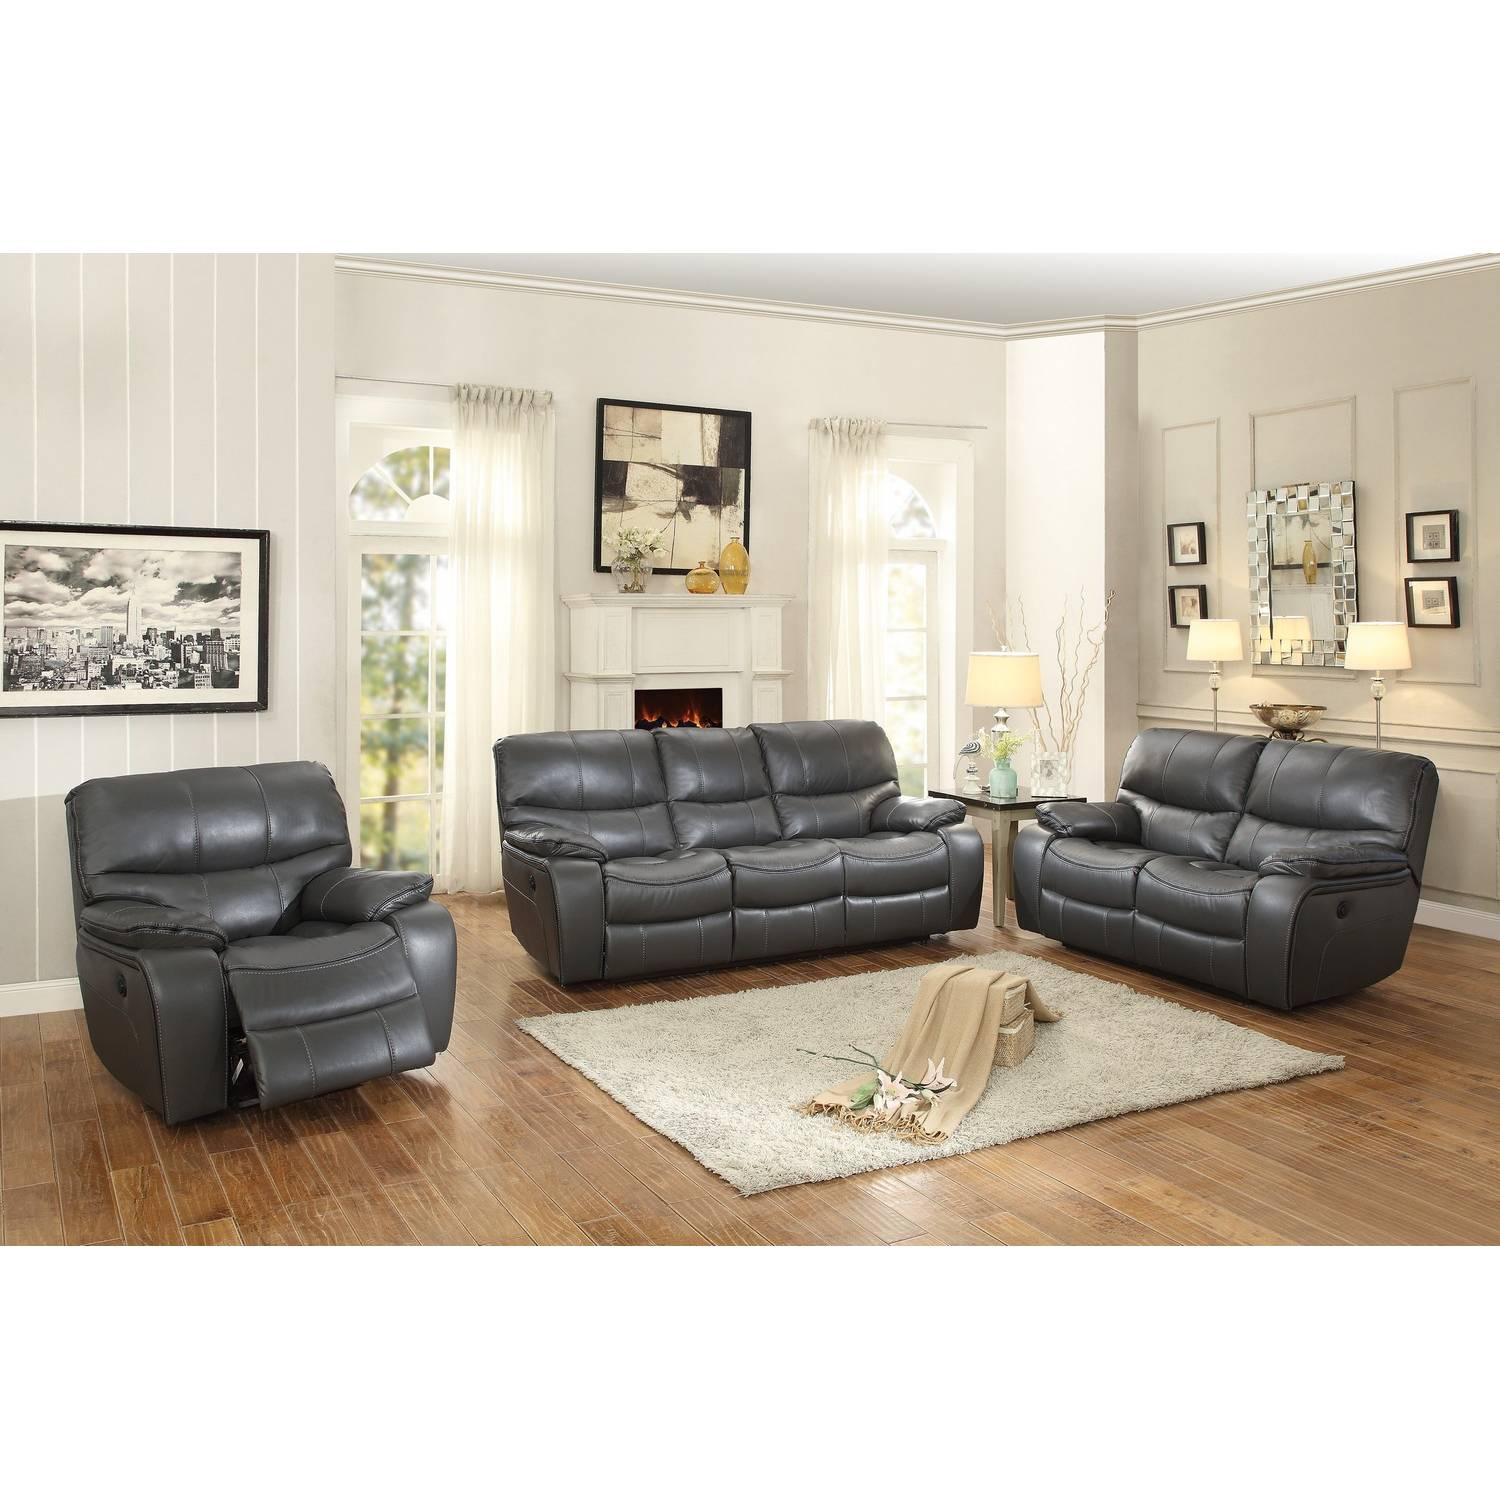 Pecos Power Reclining Sofa Set Leather Gel Match Grey